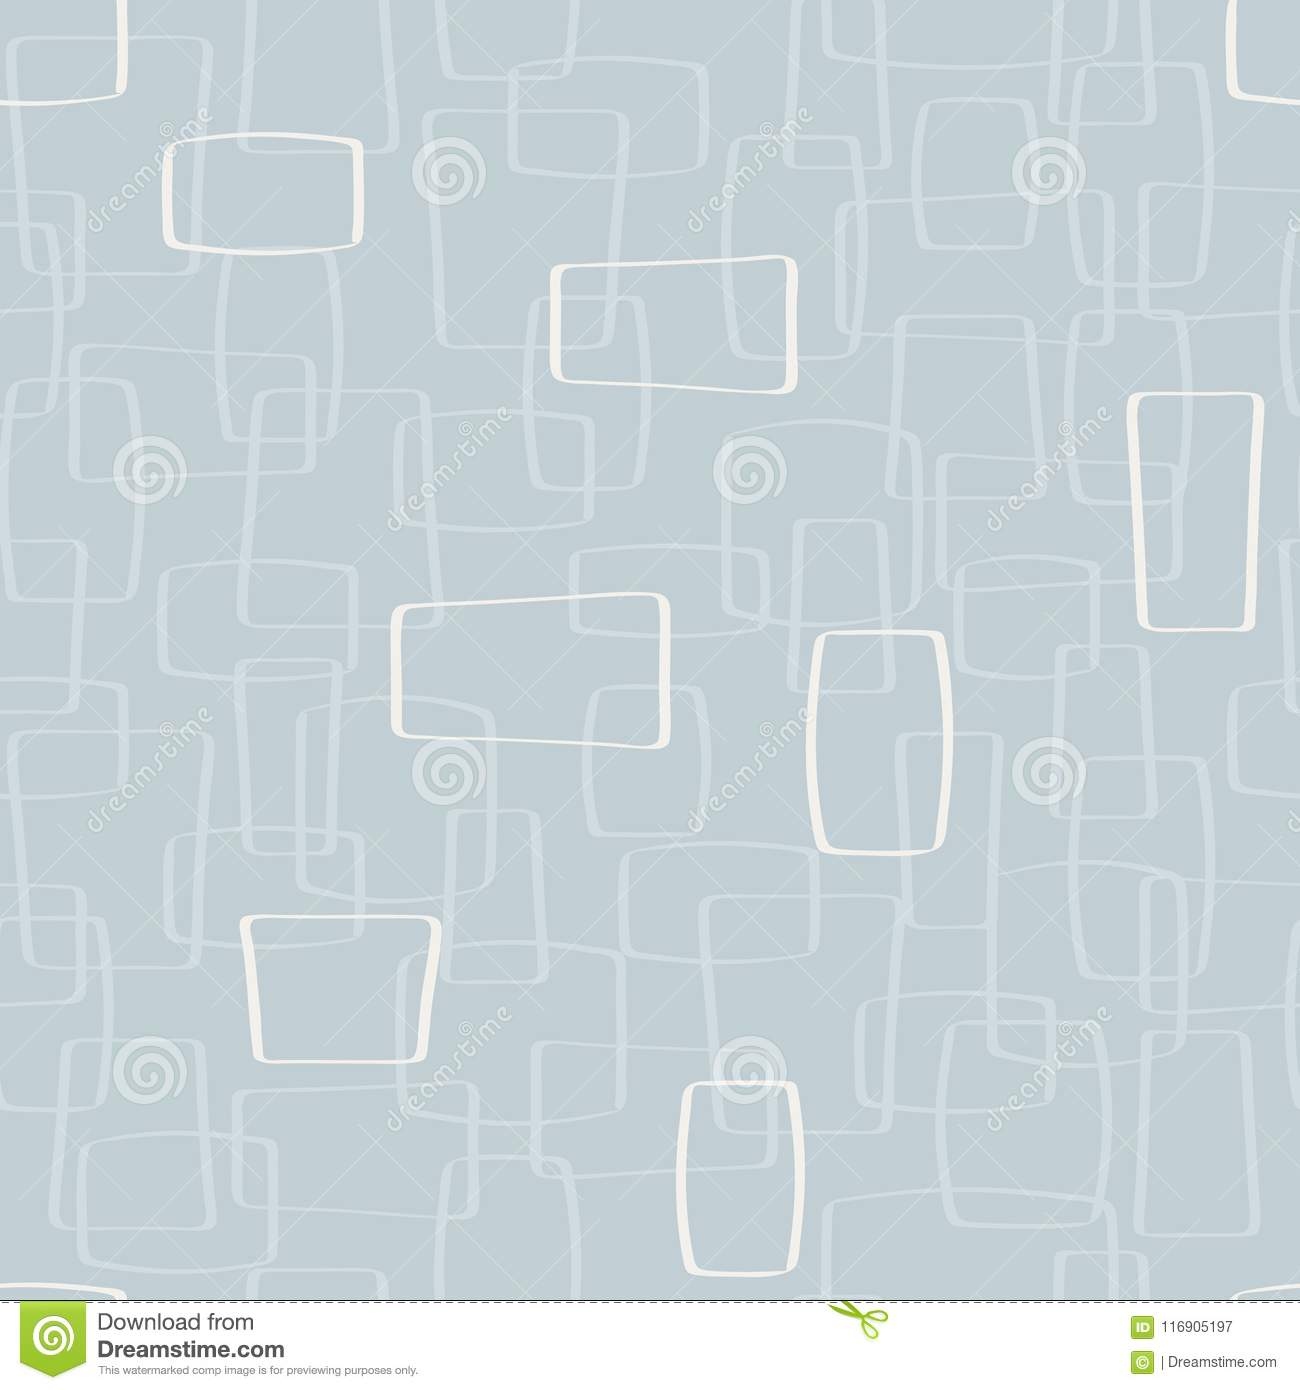 Fundo claro de Gray Mod Shapes Seamless Pattern do vetor